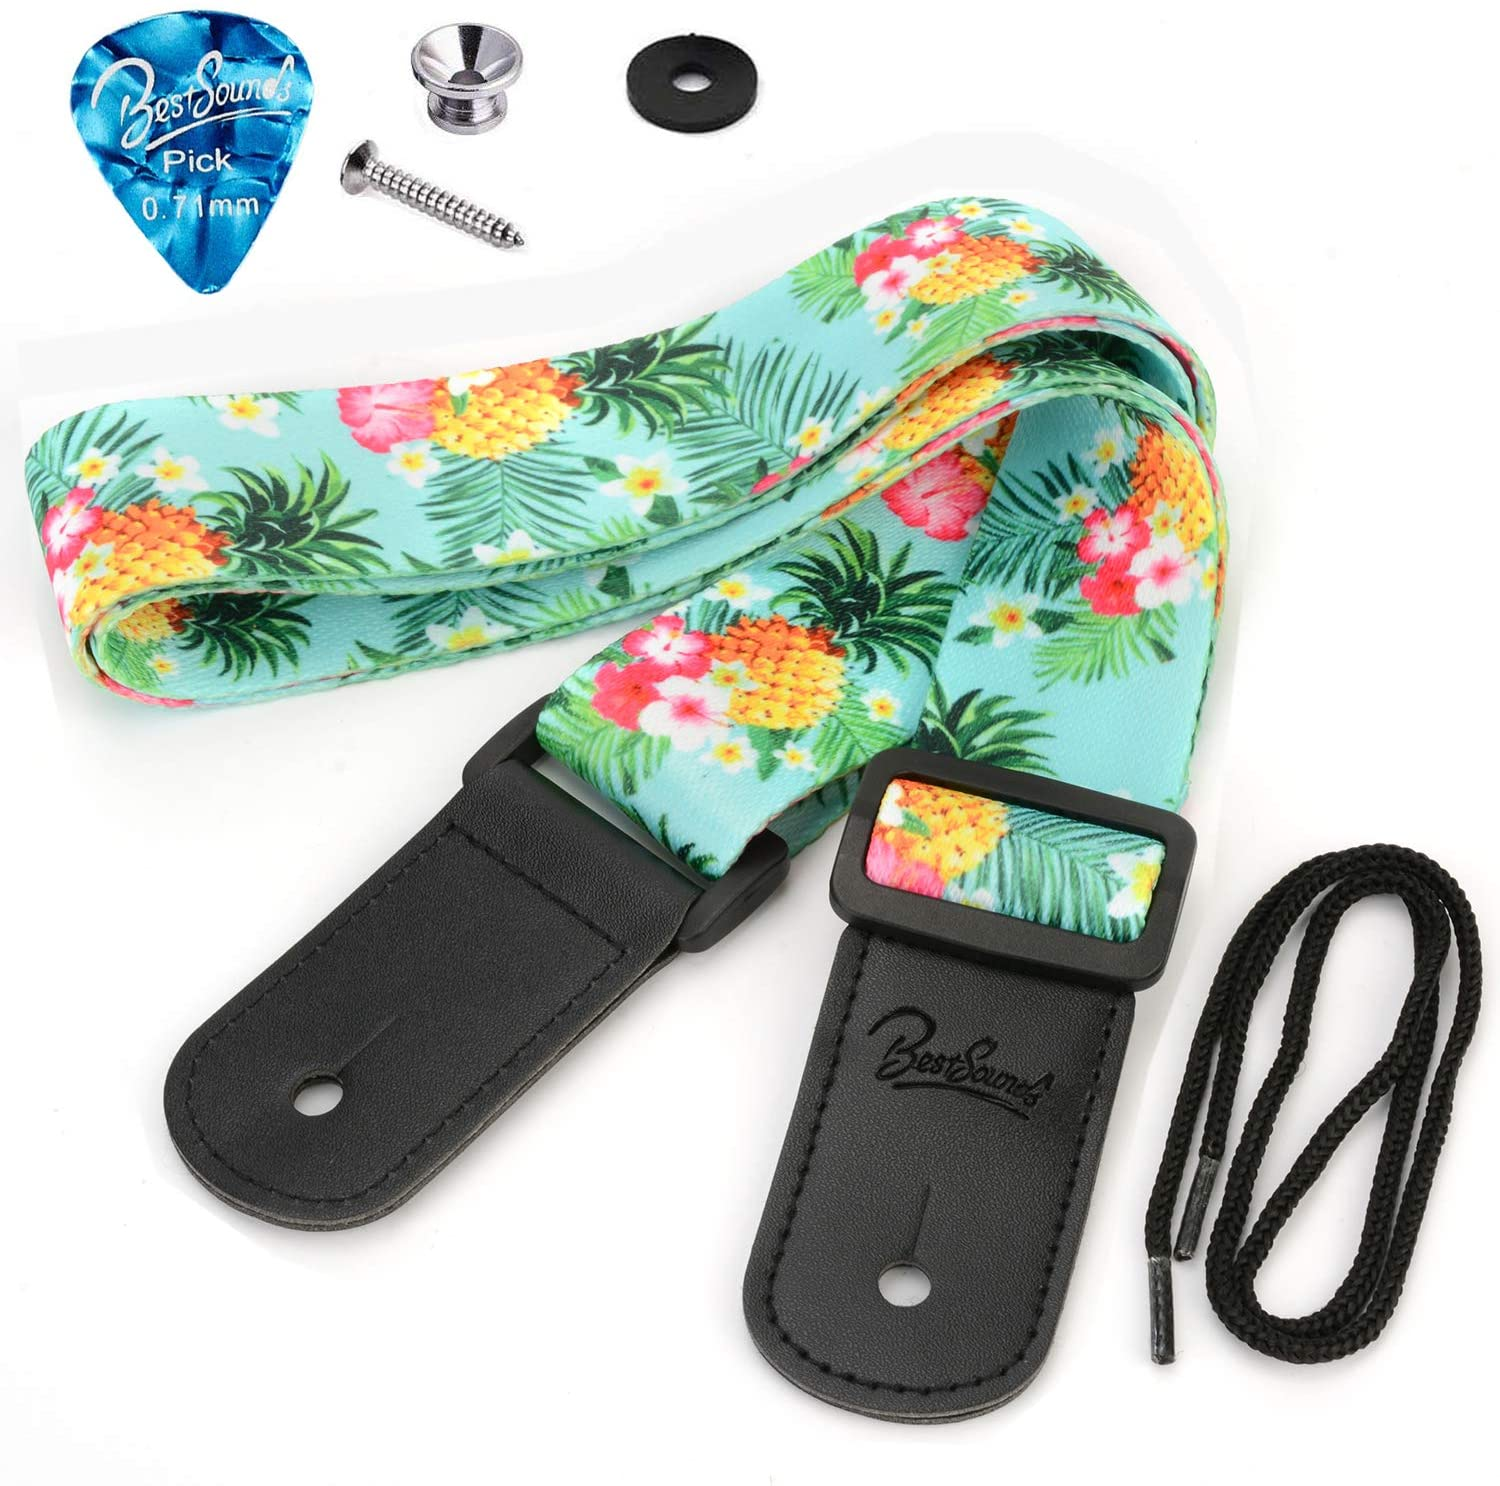 BestSounds Pineapple Ukulele Strap & Hawaiian Style Shoulder Strap Suitable for Soprano Concert Tenor Baritone String Instruments (Pineapple)